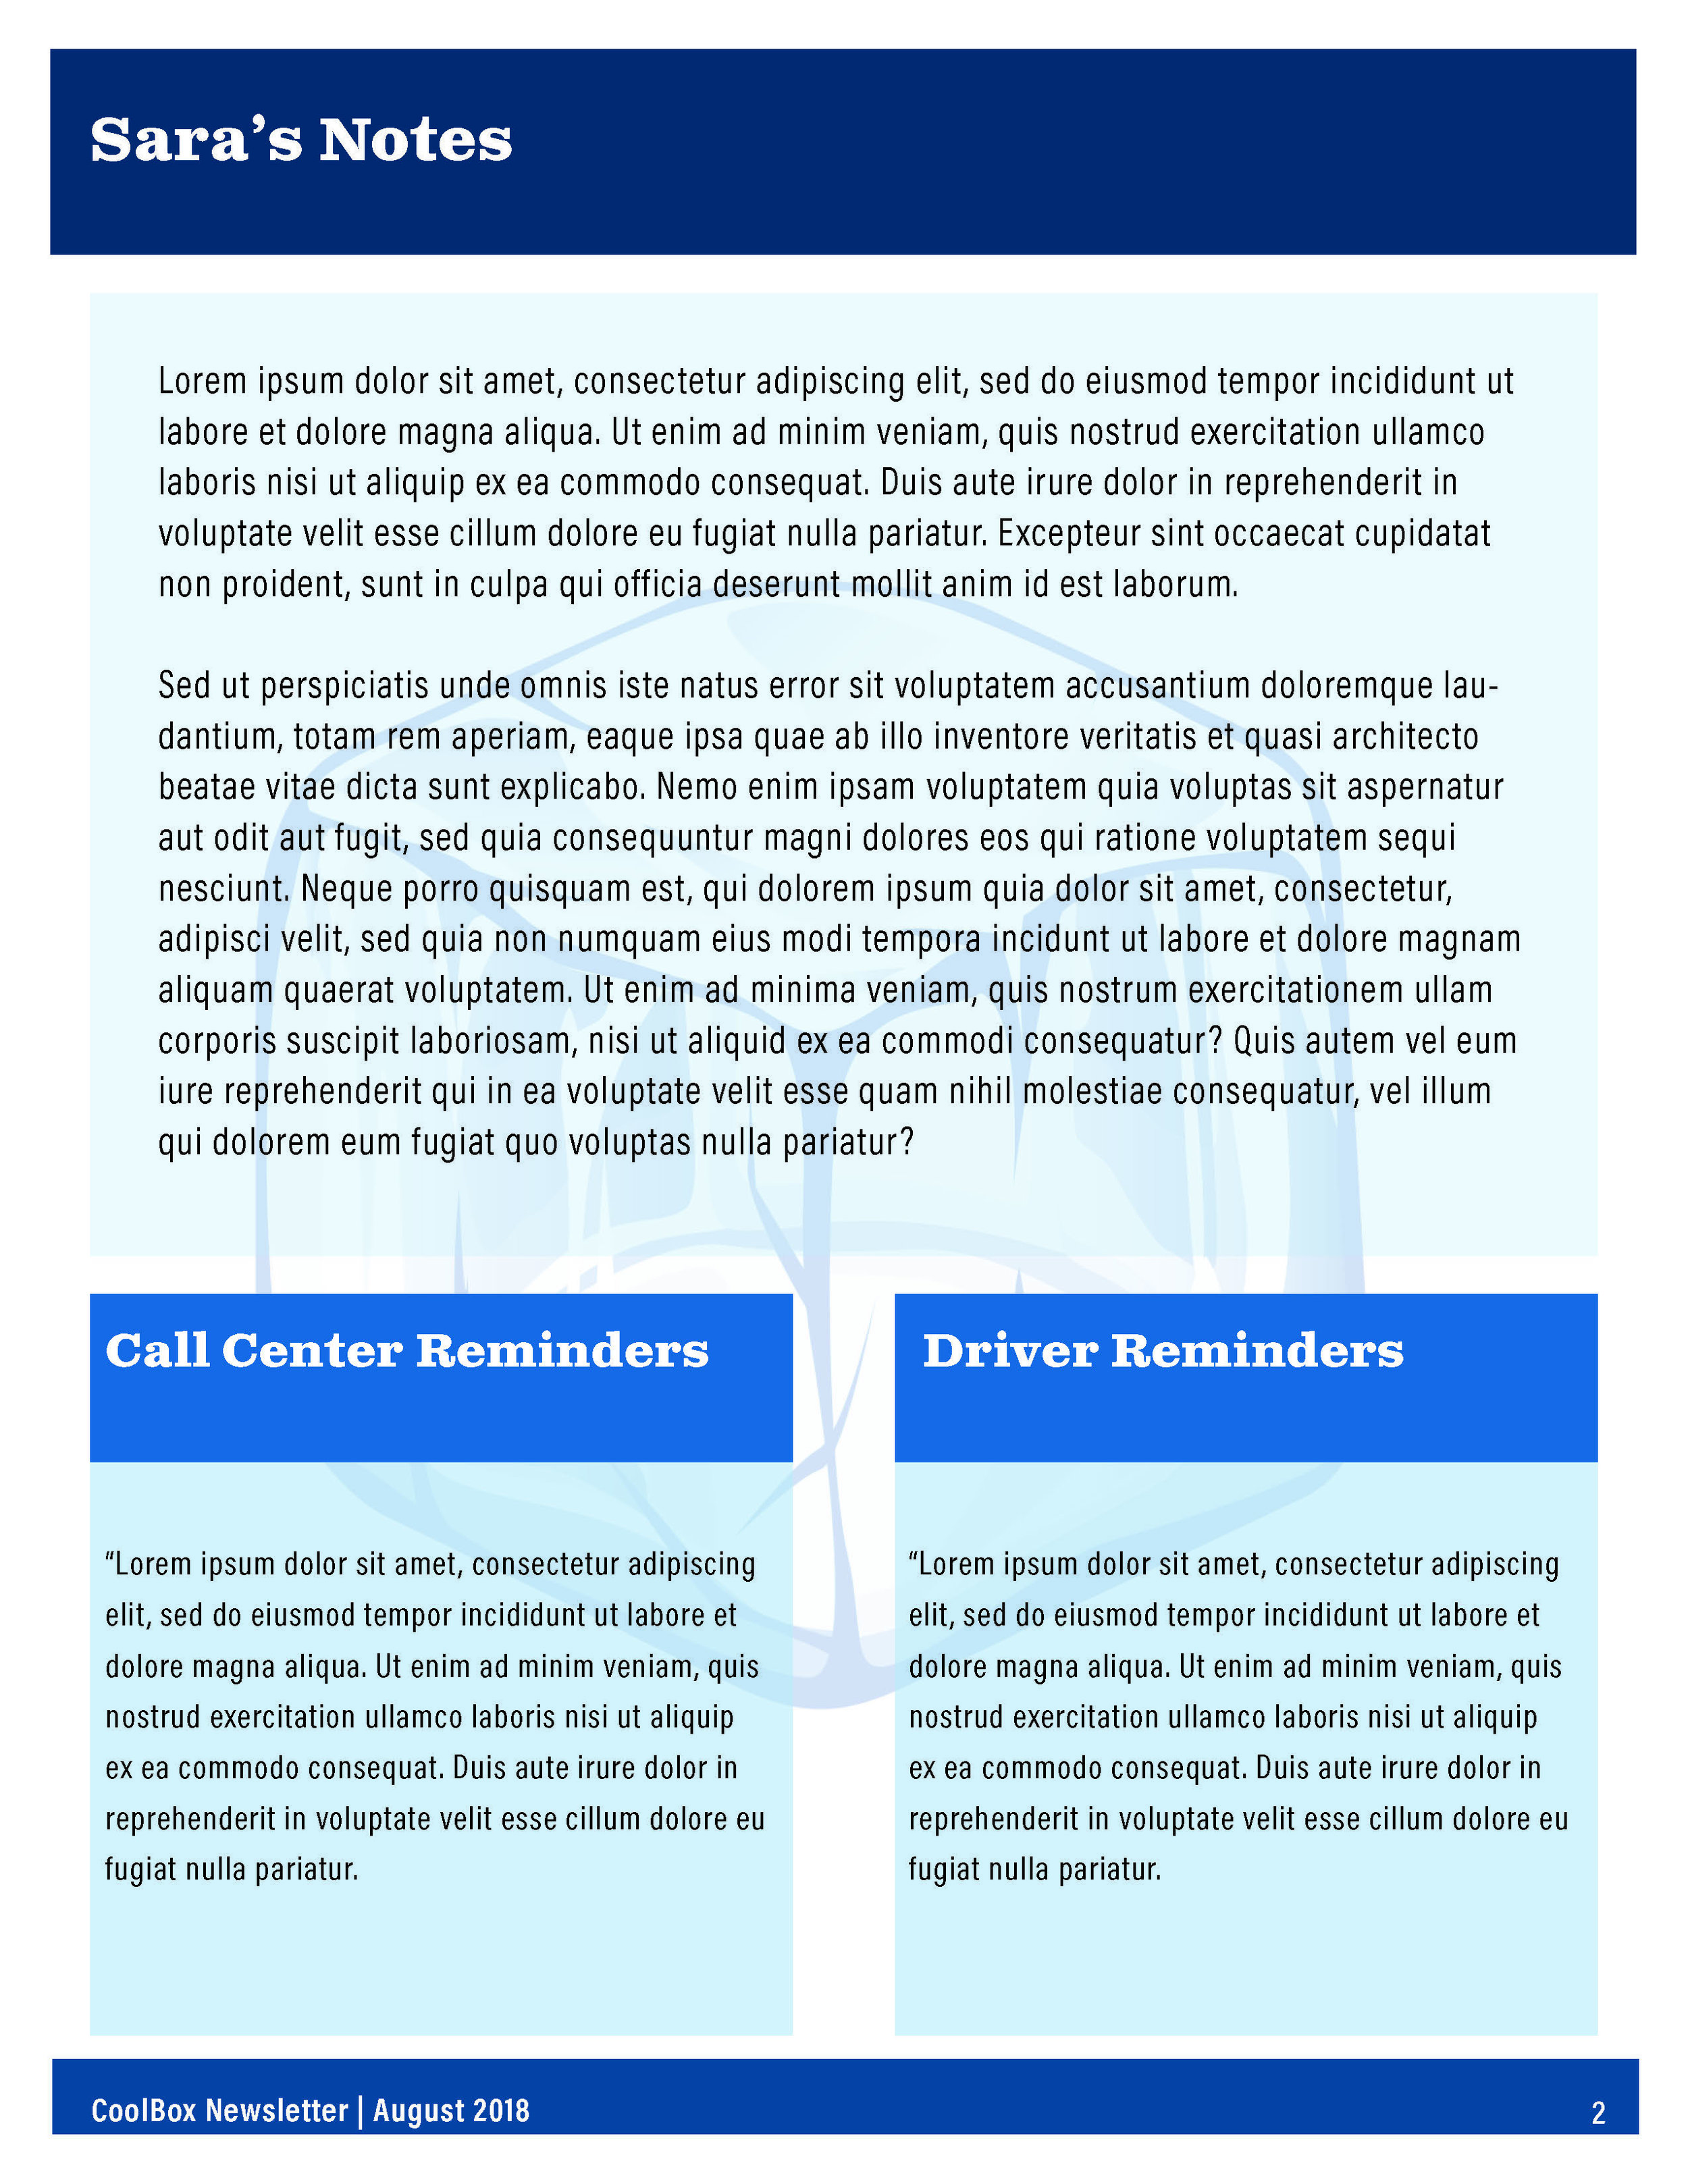 CoolBox Newsletter Template_Page_2.jpg